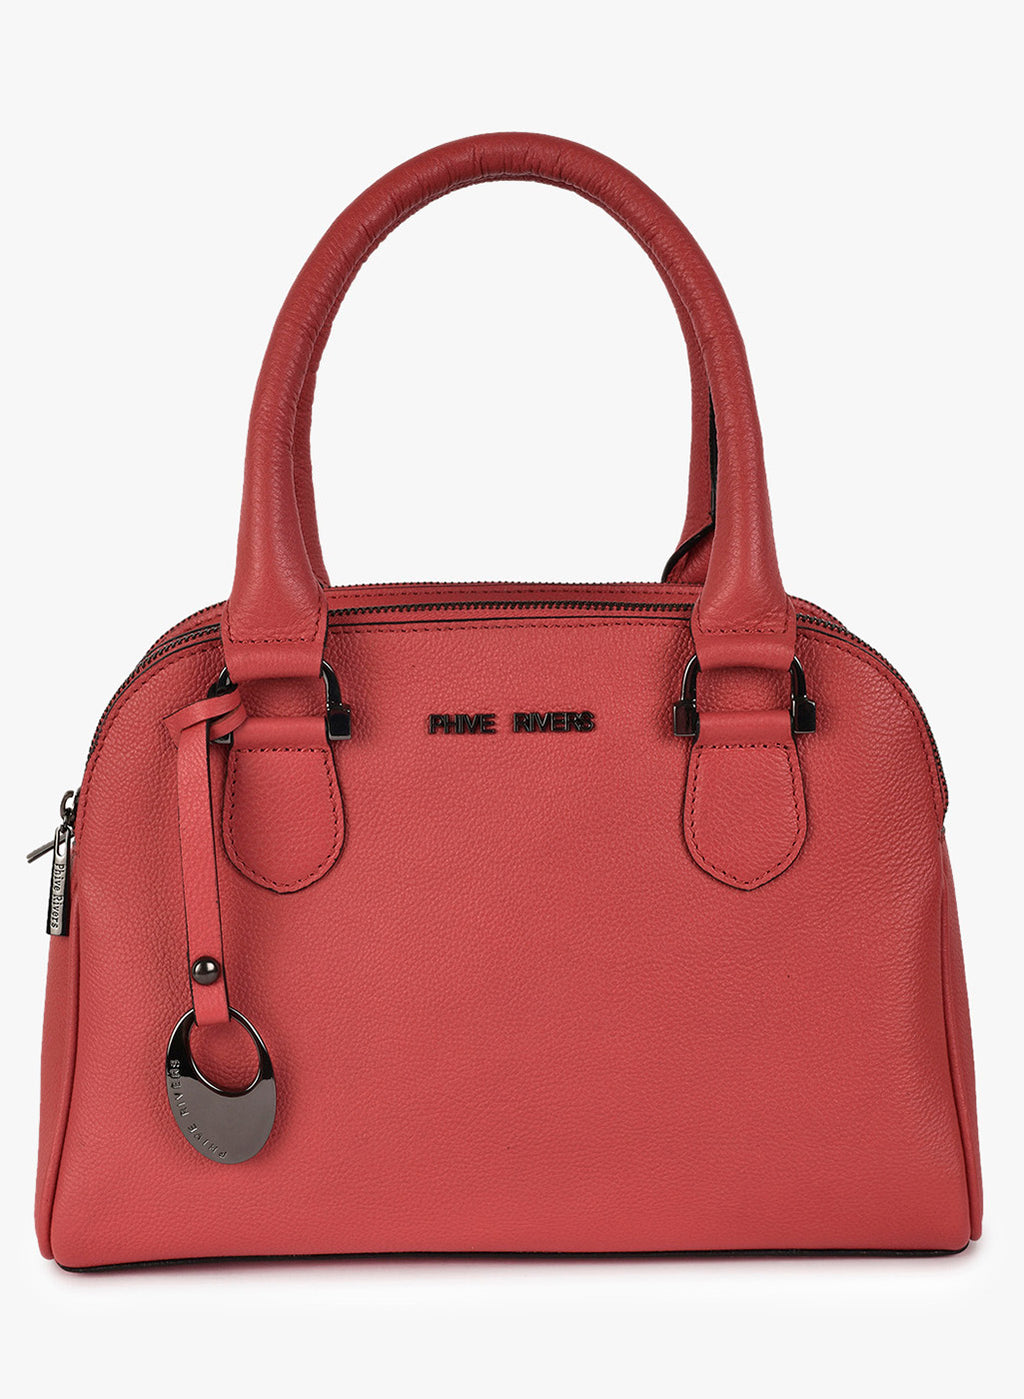 Phive Rivers Women's Leather HandBag (Pink_PR542)